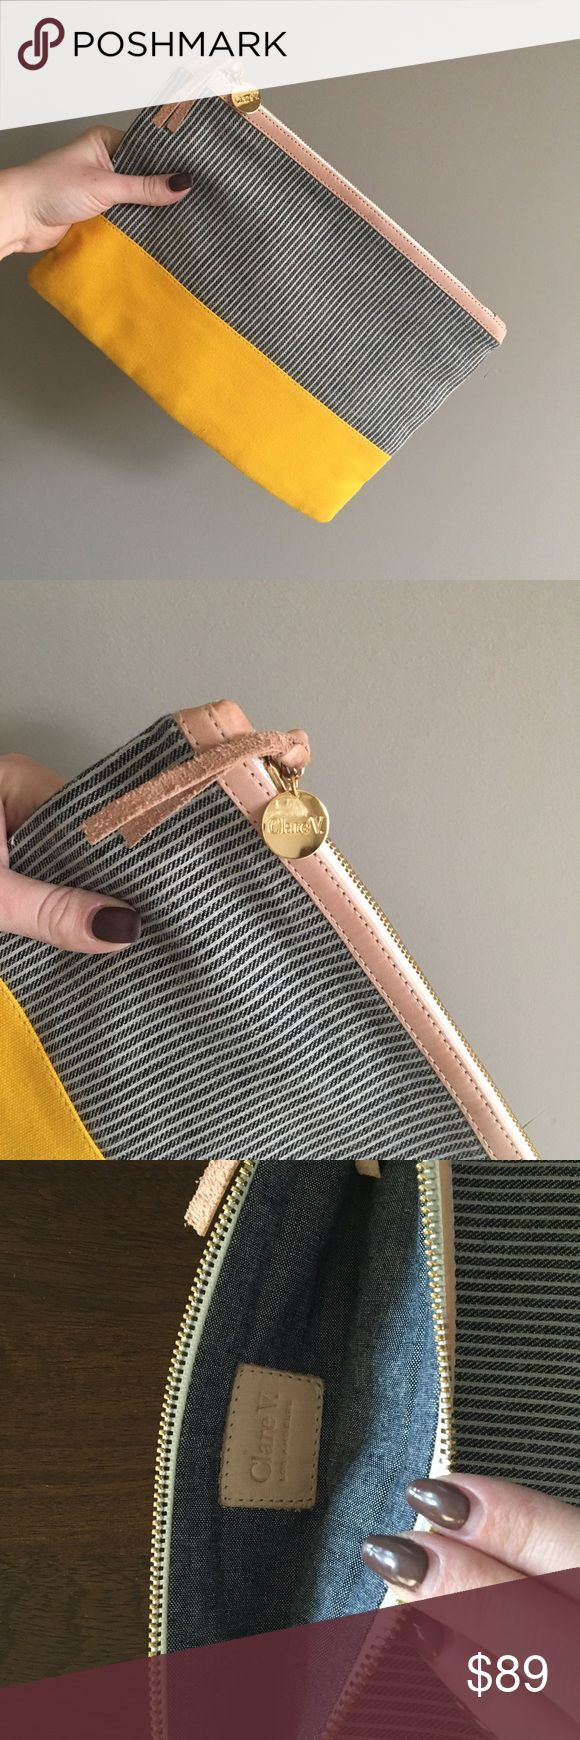 Clare Vivier Flat Clutch - Like New! 💛💙 Rarely used Clare V Clutch. No blemishes, in amazing condition. Clare Vivier Bags Clutches & Wristlets